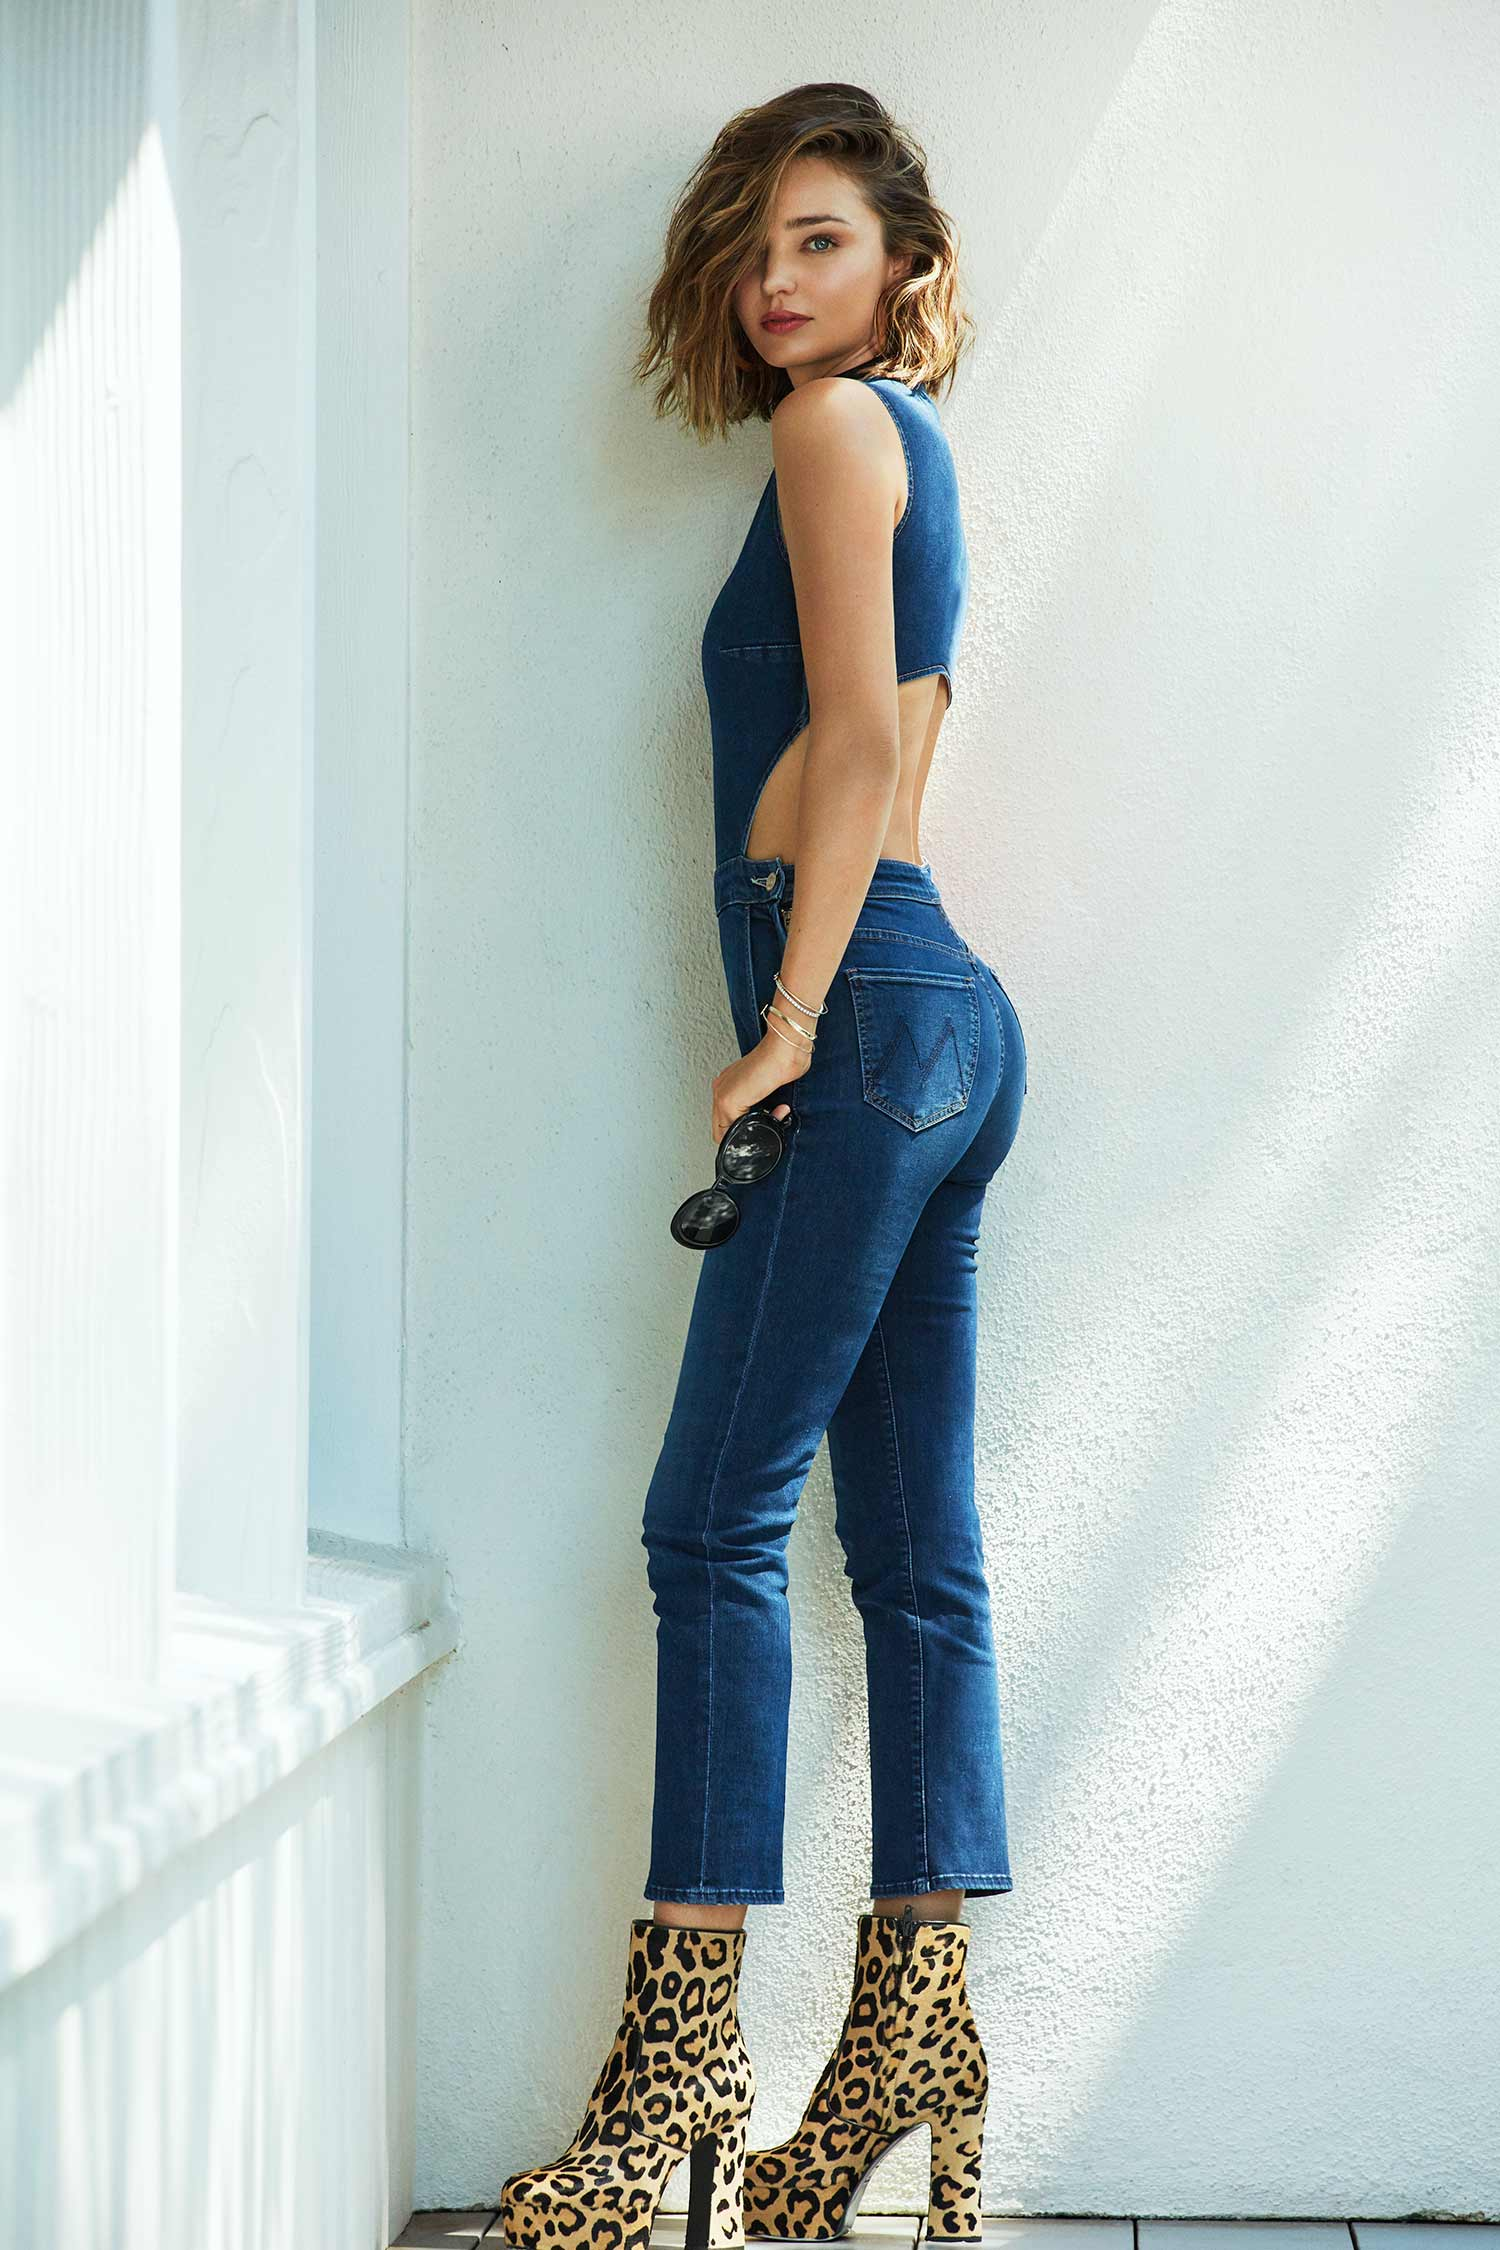 miranda-kerr-x-mother-denim-capsule-collaboration-collection-4